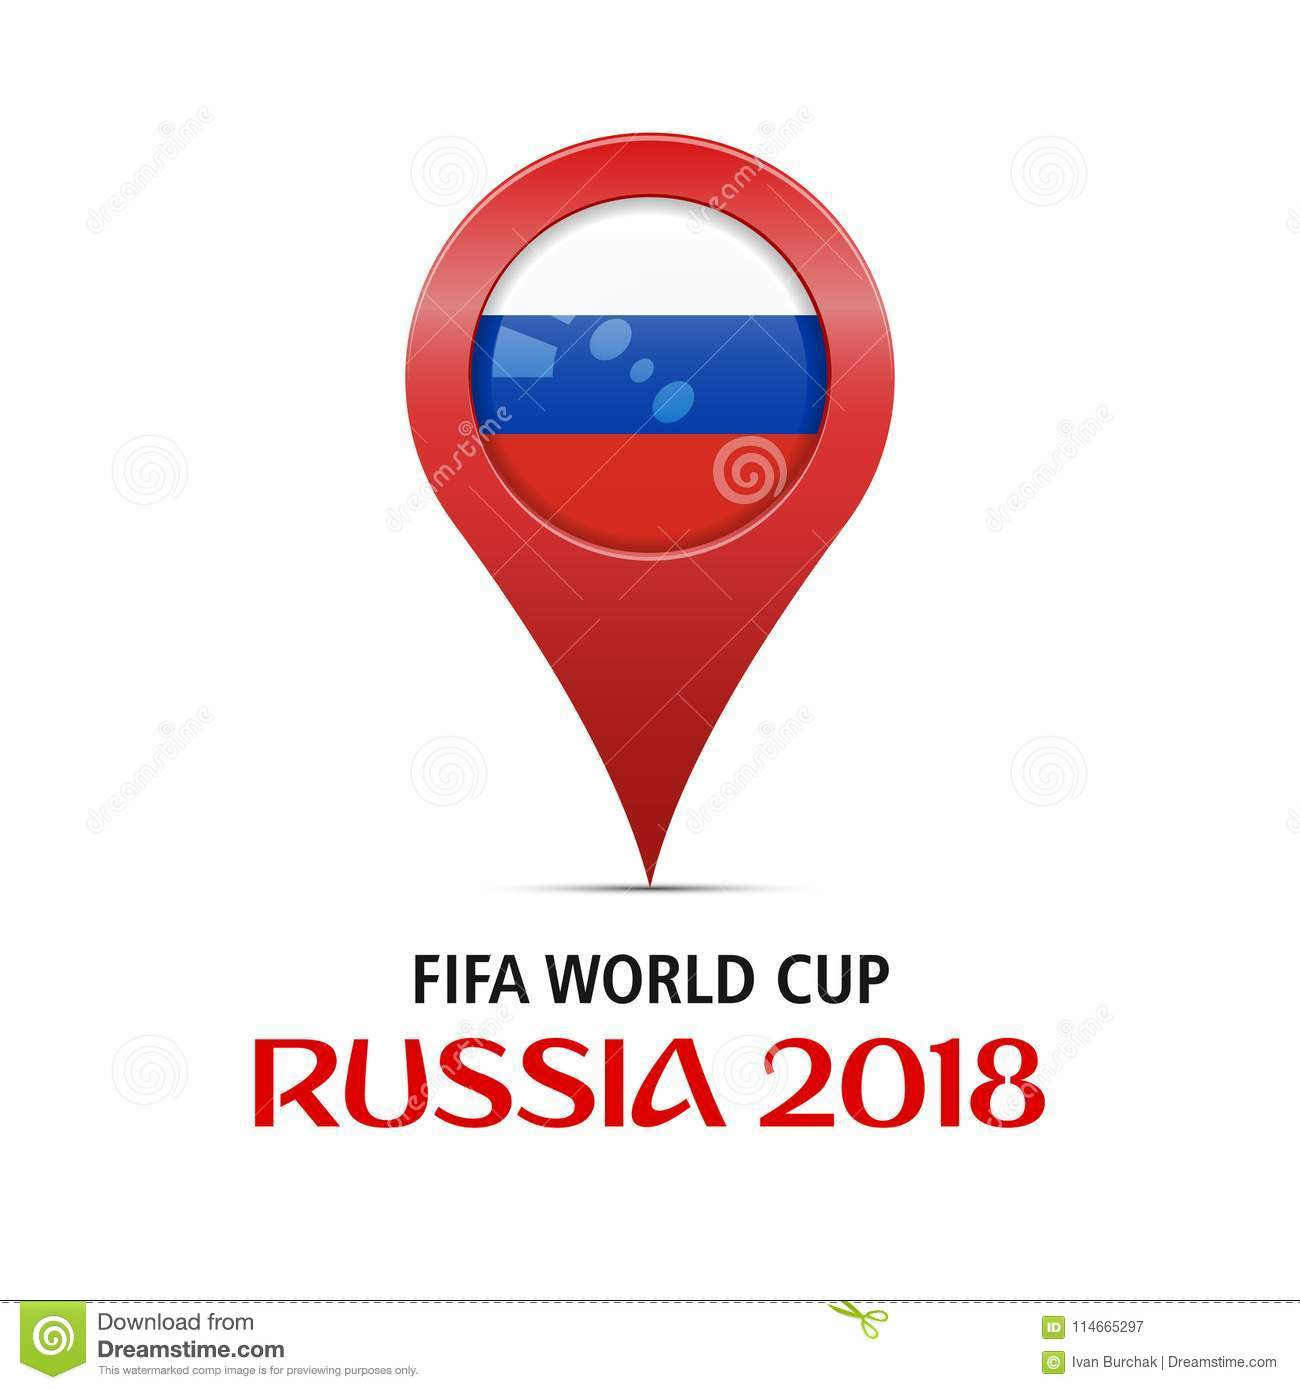 Fantastic Fifa World Cup 2018 - fifa-world-cup-location-moscow-russia-soccer-world-cup-big-red-map-marker-flag-russia-vector-fifa-world-cup-location-114665297  HD_801664 .jpg